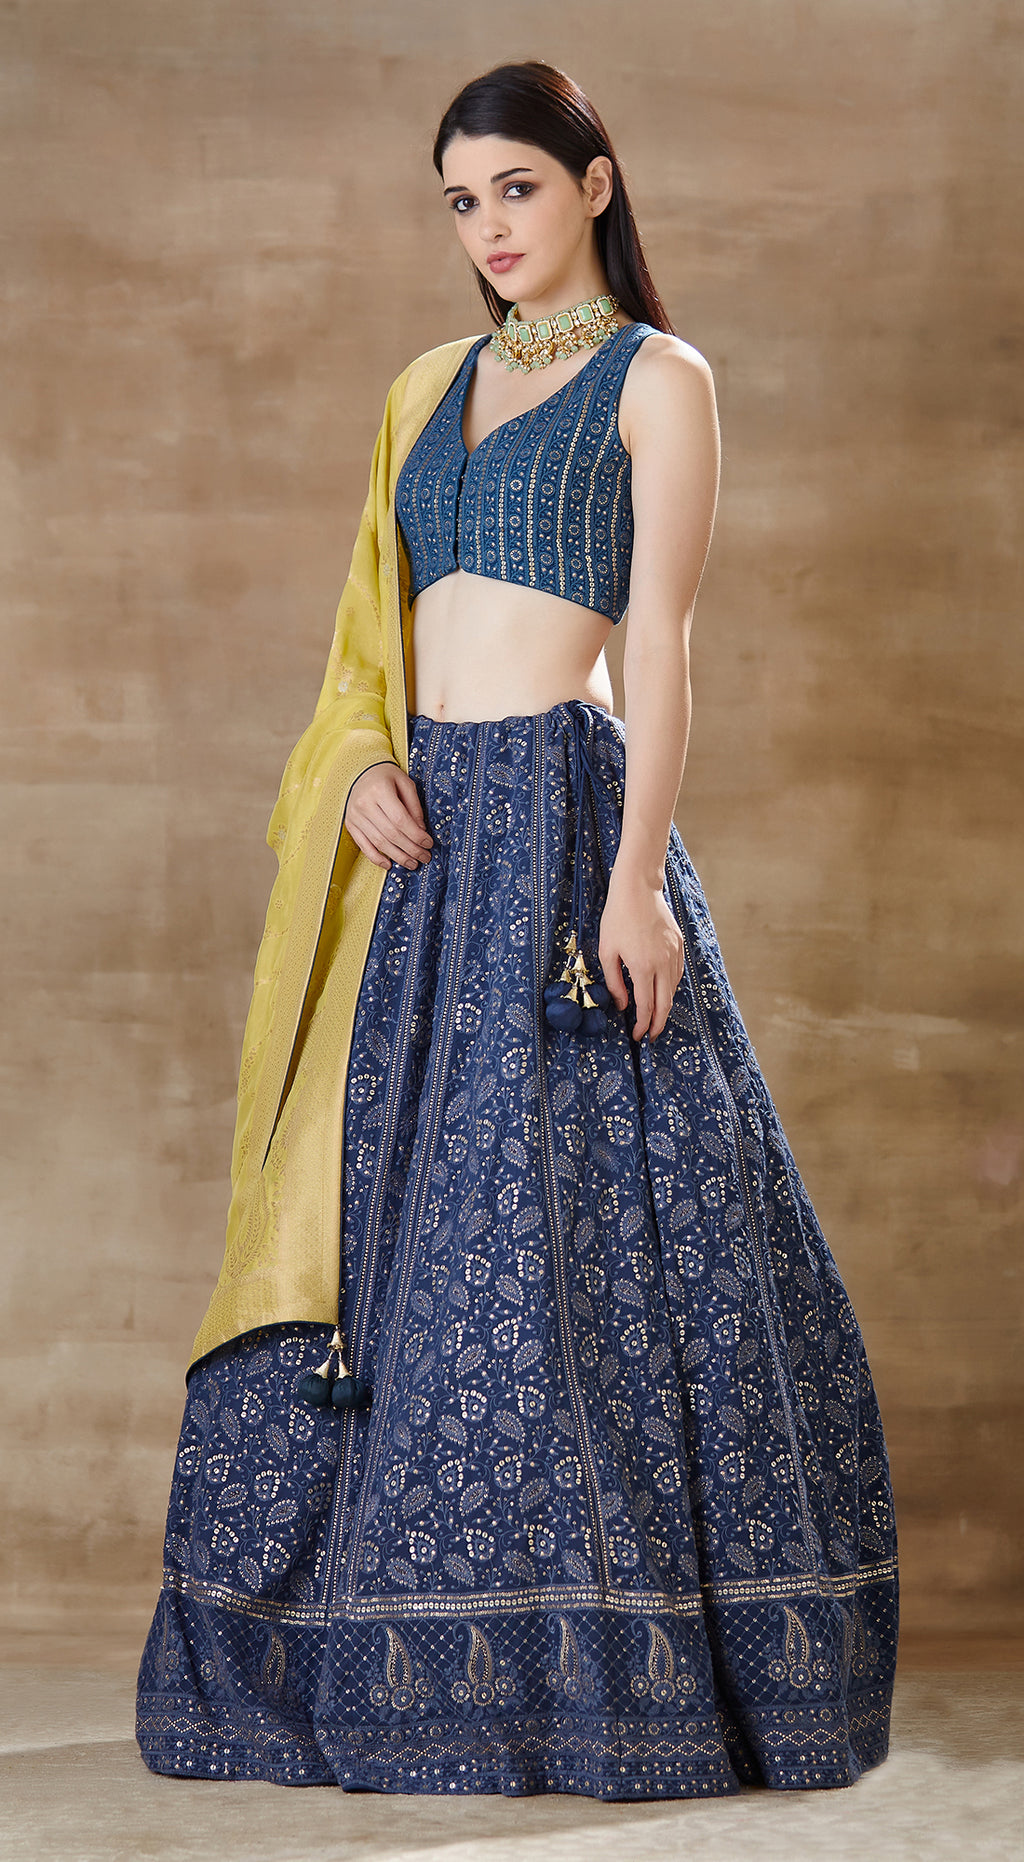 Blue lucknowi blouse with lucknowi lehenga paired with bright green banarsi dupatta.